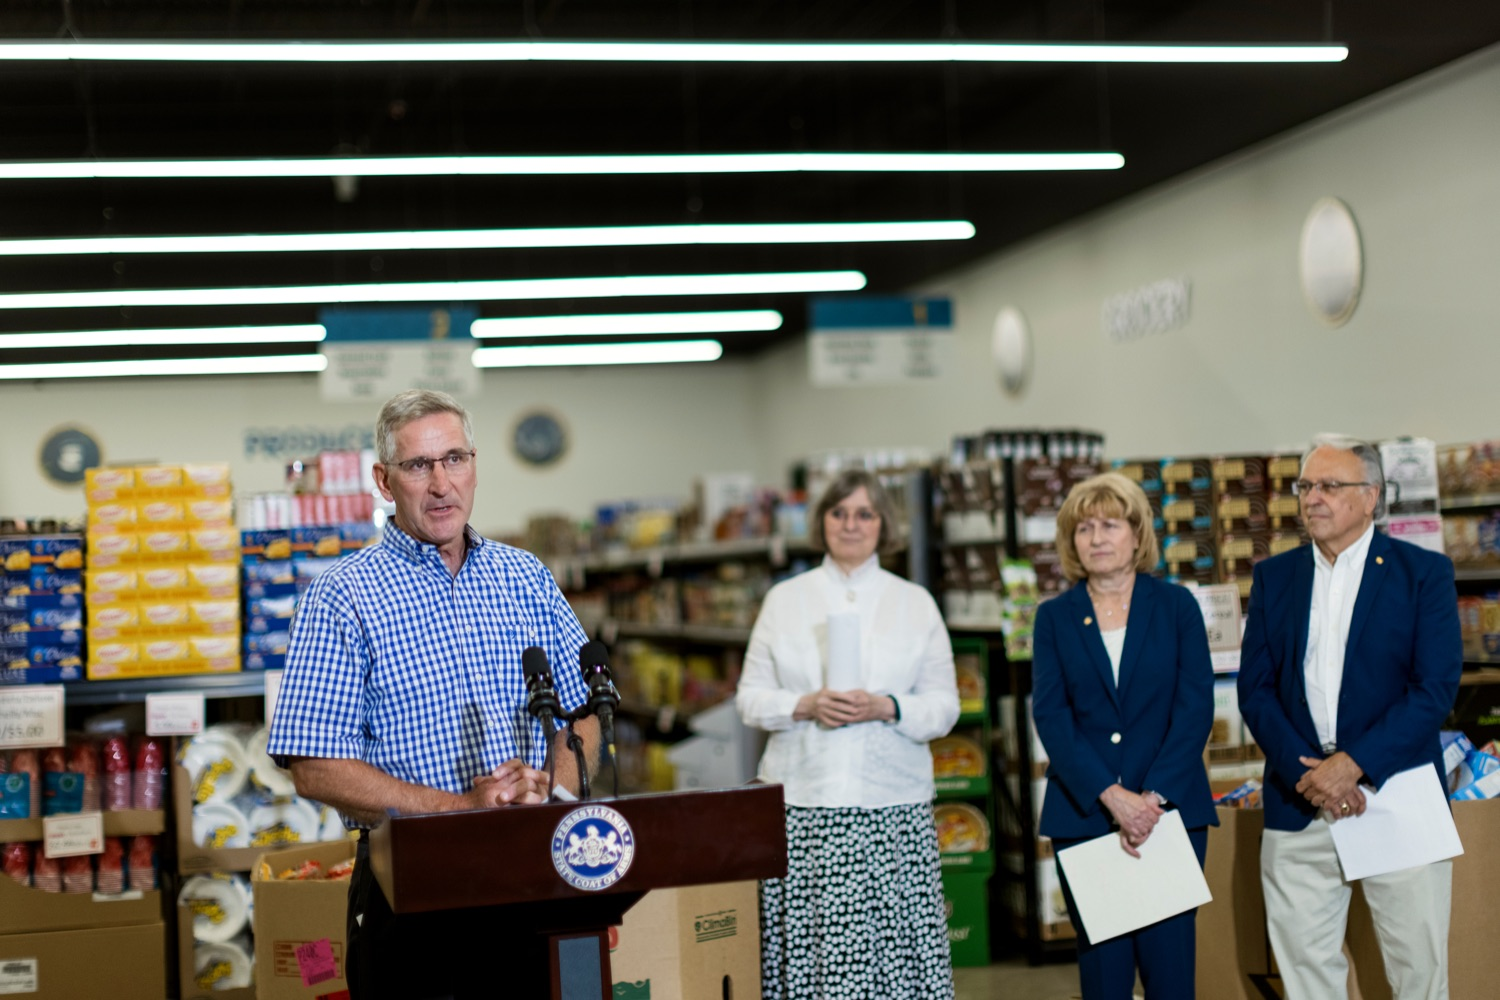 """<a href=""""https://filesource.wostreaming.net/commonwealthofpa/photo/18939_AGRIC_FL_Urban_Farms_NK_004.jpg"""" target=""""_blank"""">⇣Download Photo<br></a>PA Dept. of Agriculture Secretary Russell Redding speaks inside Treasures Markets in Lancaster on Monday, July 19, 2021. The Treasures of Hope Foundation and Treasures Markets were formed in February 2018 to bring back groceries to Lancaster City. Treasures of Hope is a 501C3 and Treasures Markets is an LLC social enterprise under Treasures of Hope. All profits from Treasures Markets go to Treasures of Hope which distributes them to other 501C3 organizations that feed the hungry and homeless."""